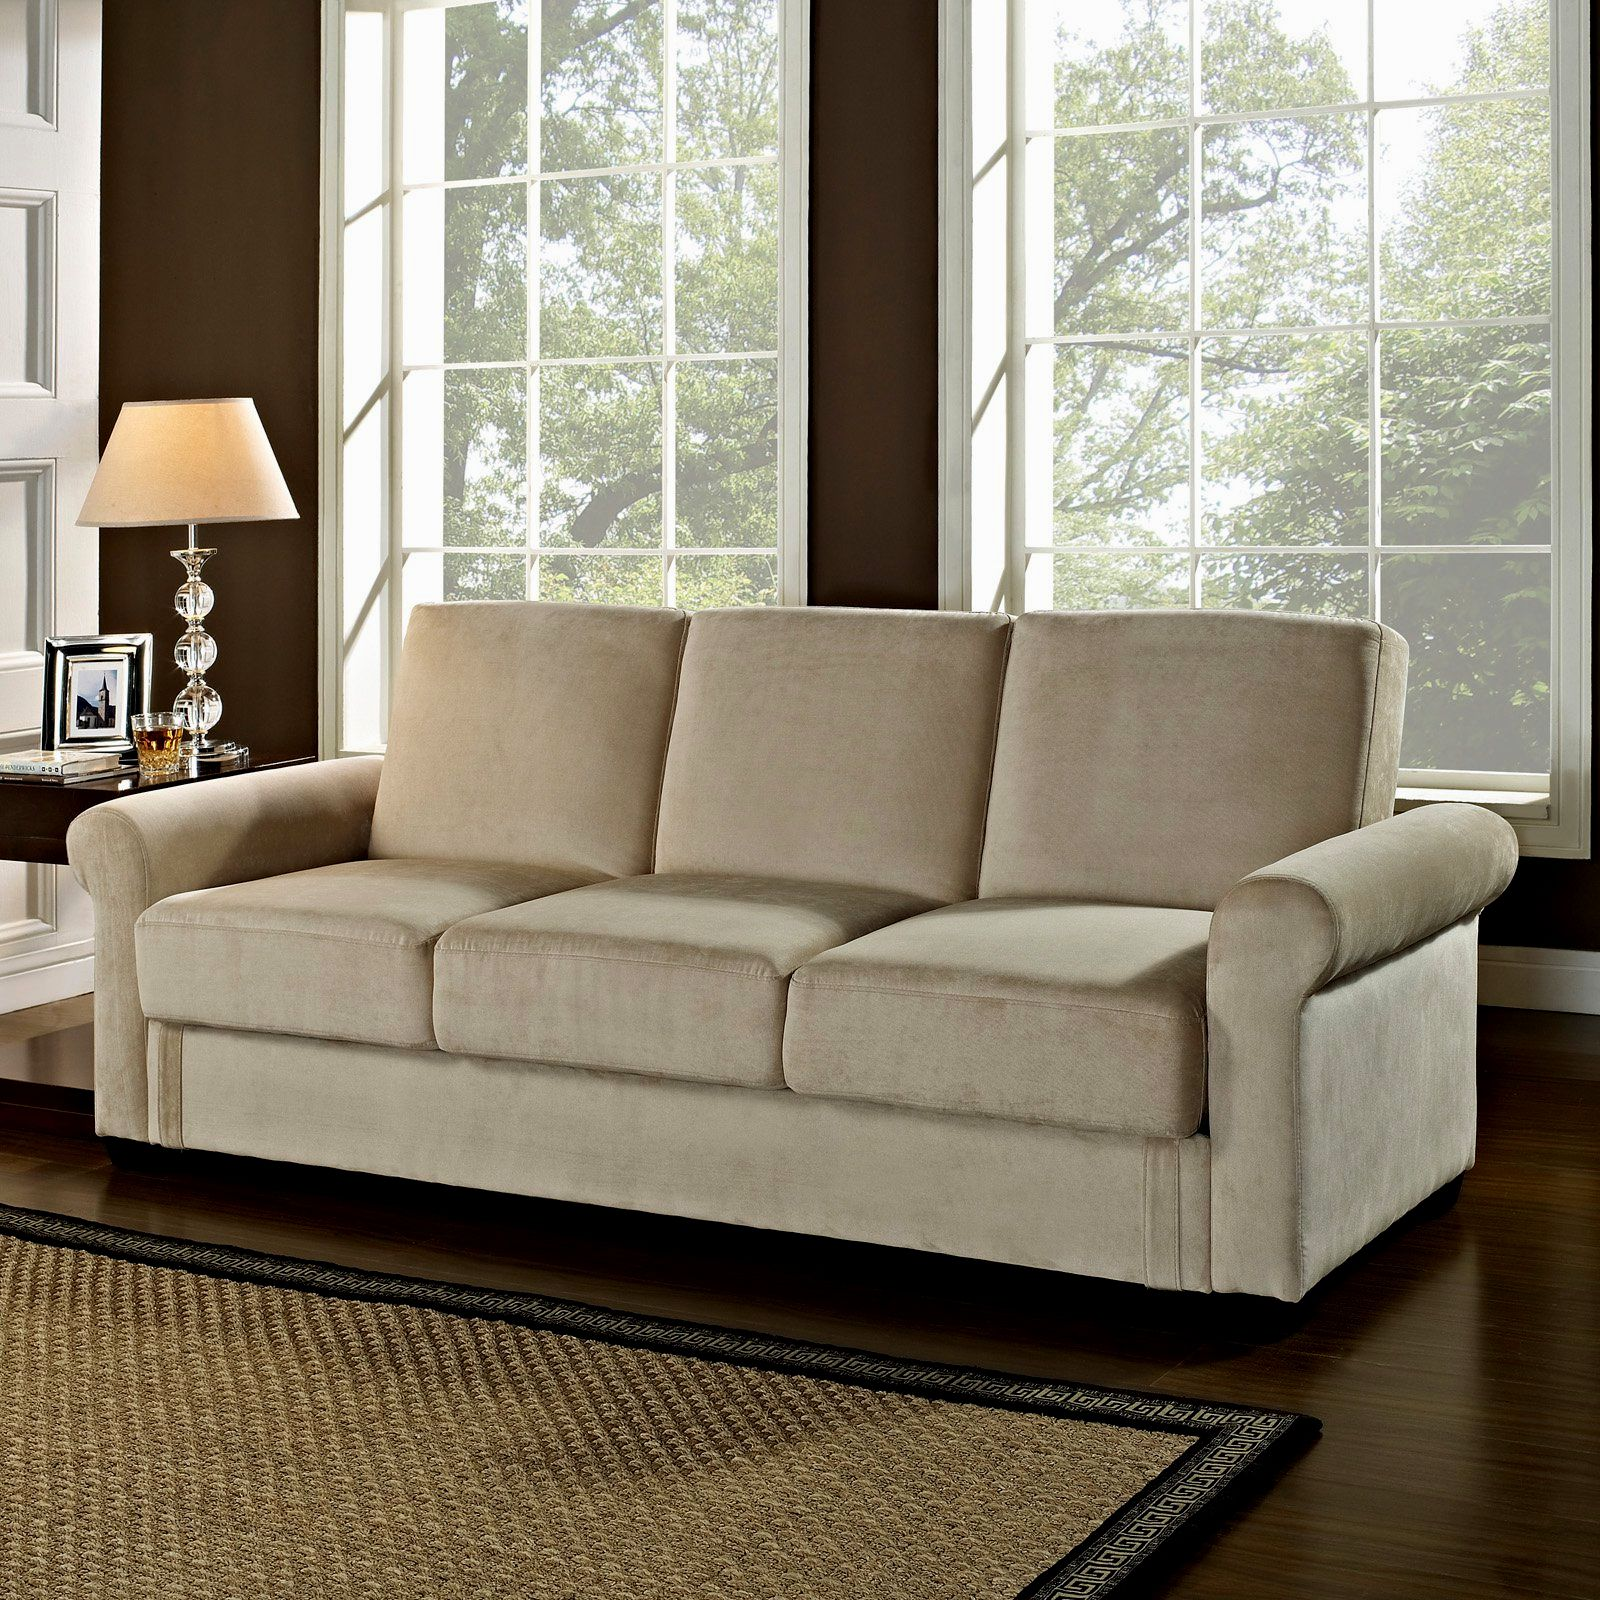 excellent serta sleeper sofa gallery-Lovely Serta Sleeper sofa Pattern